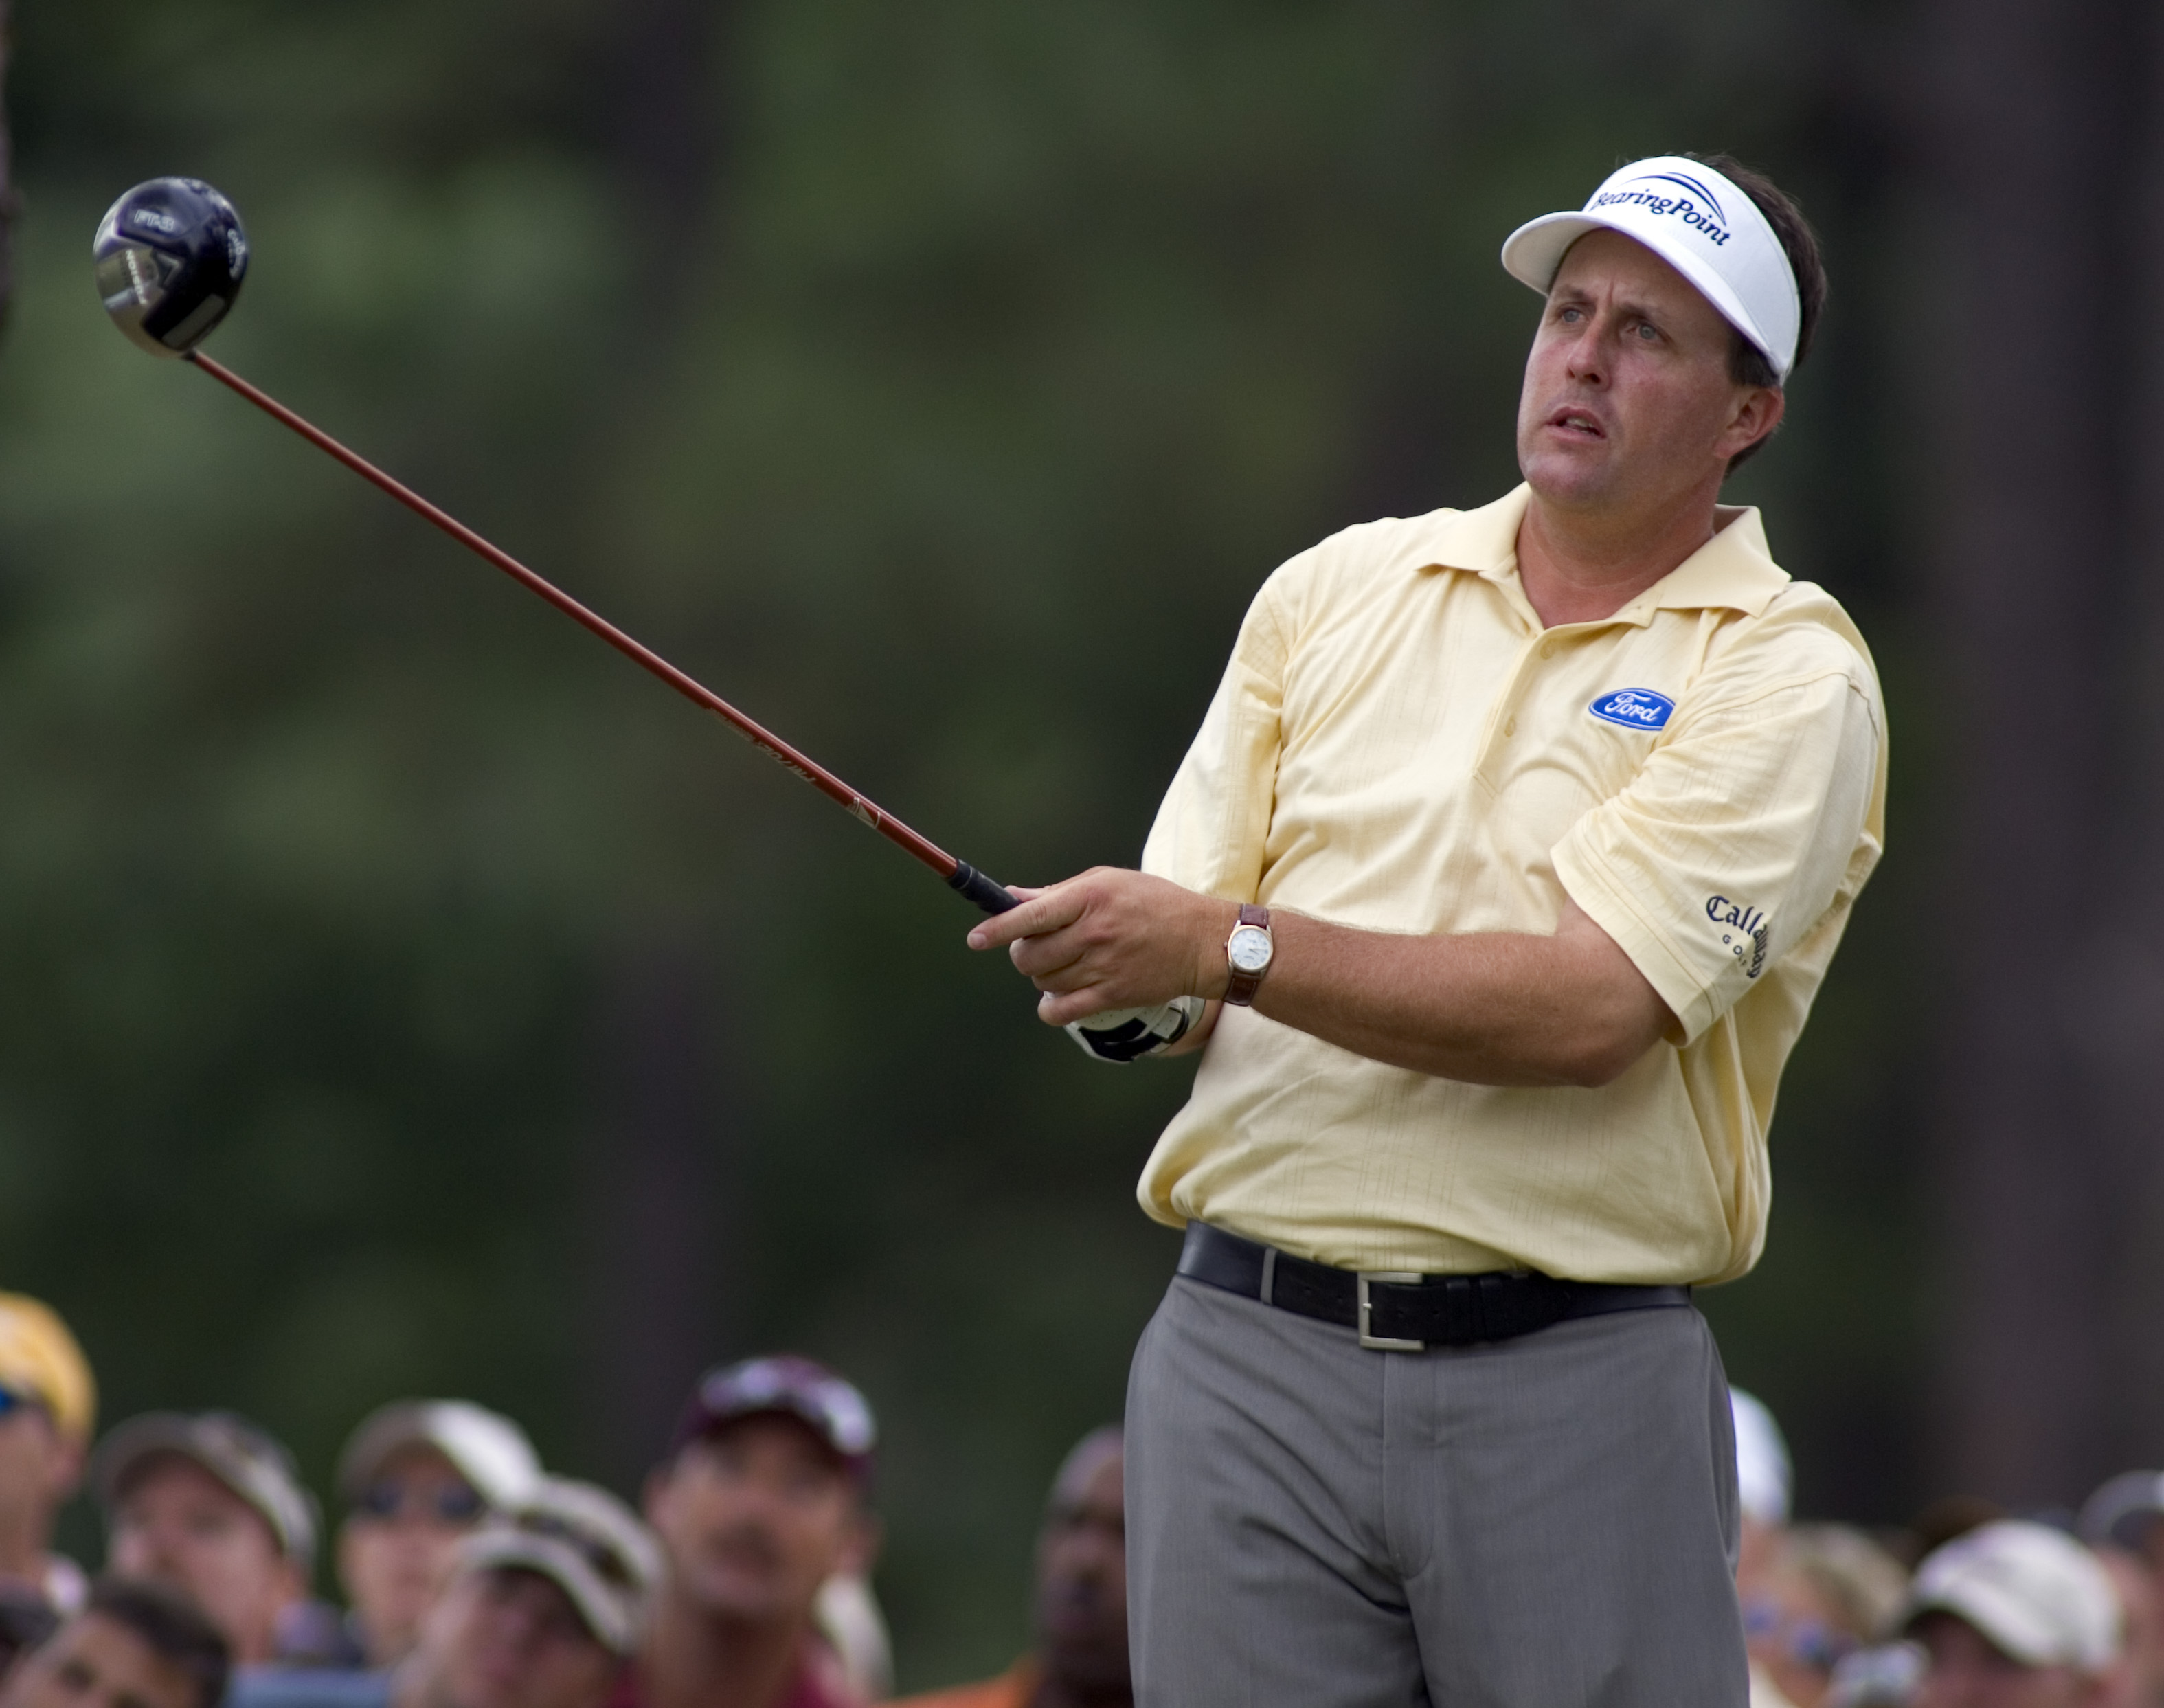 Phil Mickelson tees off during the second round of the 2005 U.S. Open at Pinehurst. Mickelson shot himself out of contention with a 77. Photo by Bob Donnan.